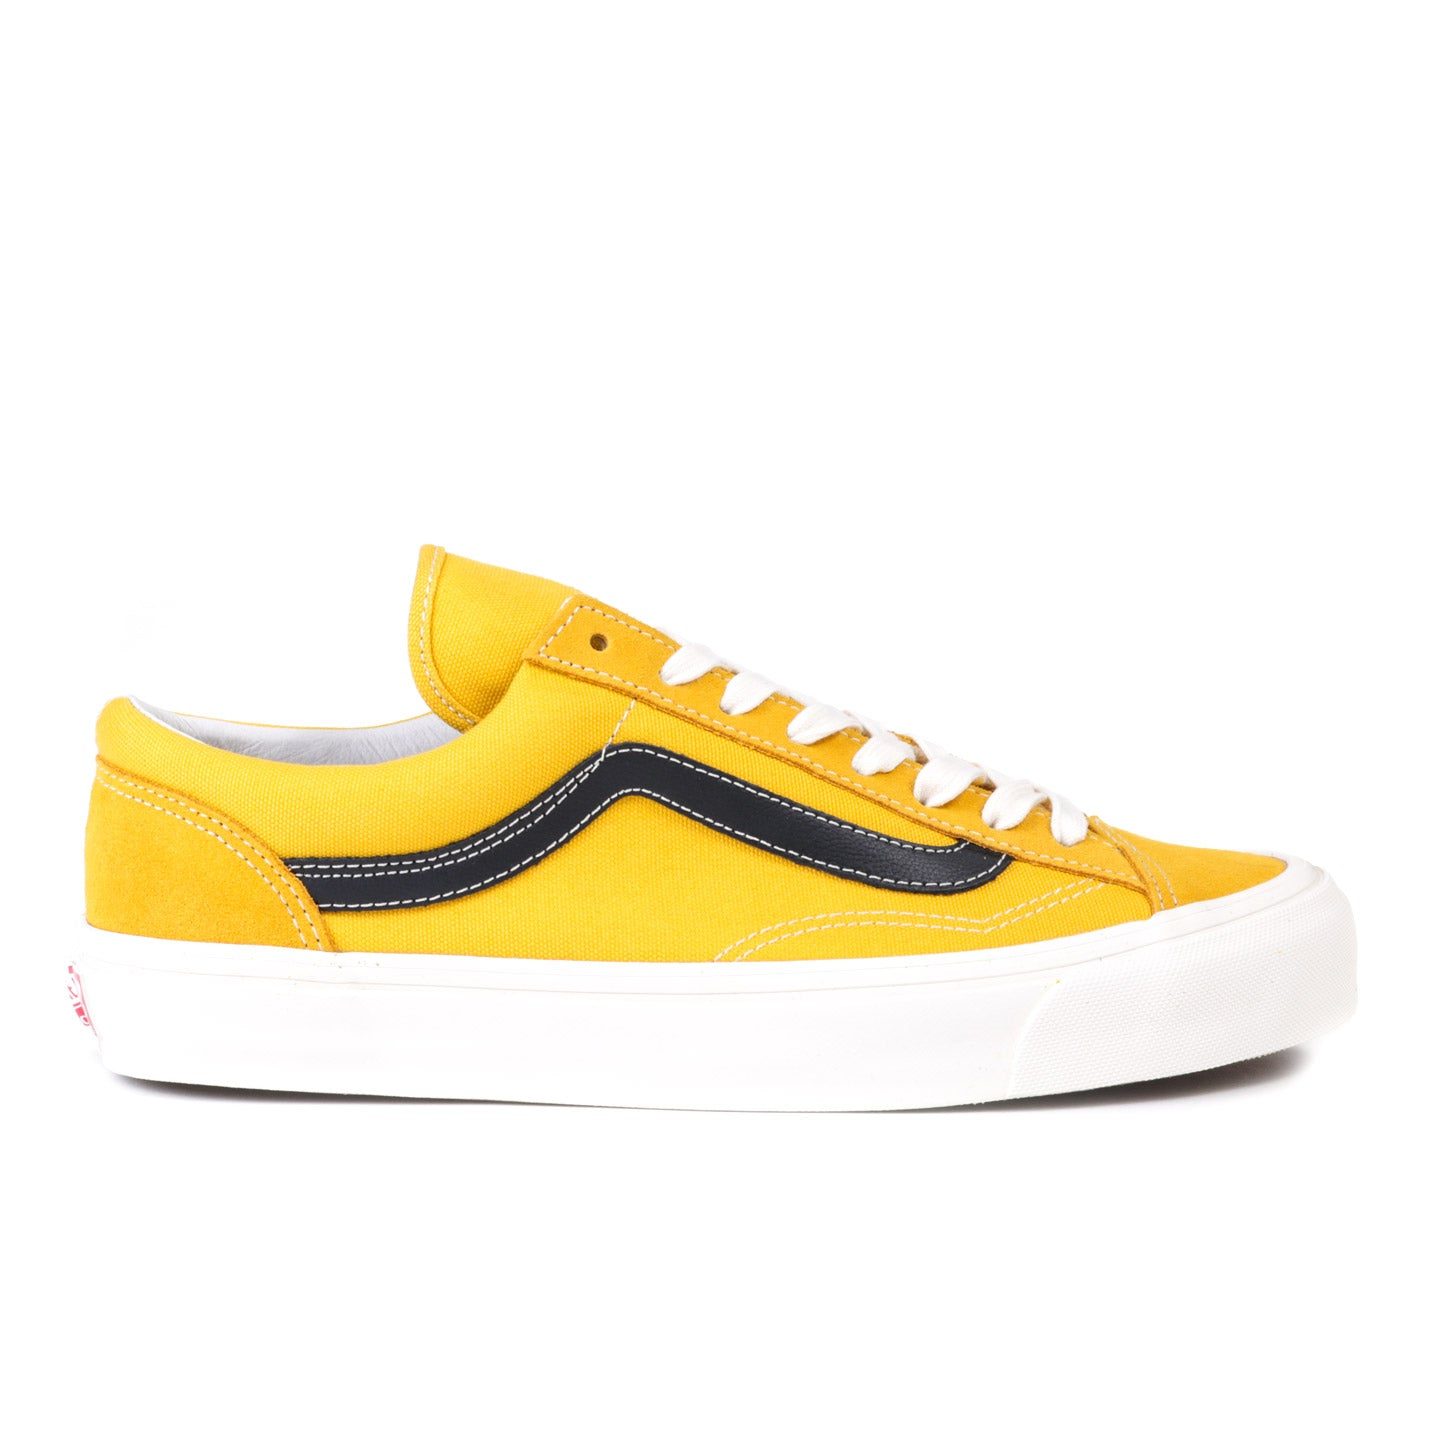 VAULT BY VANS OG STYLE 36 LX OLD GOLD